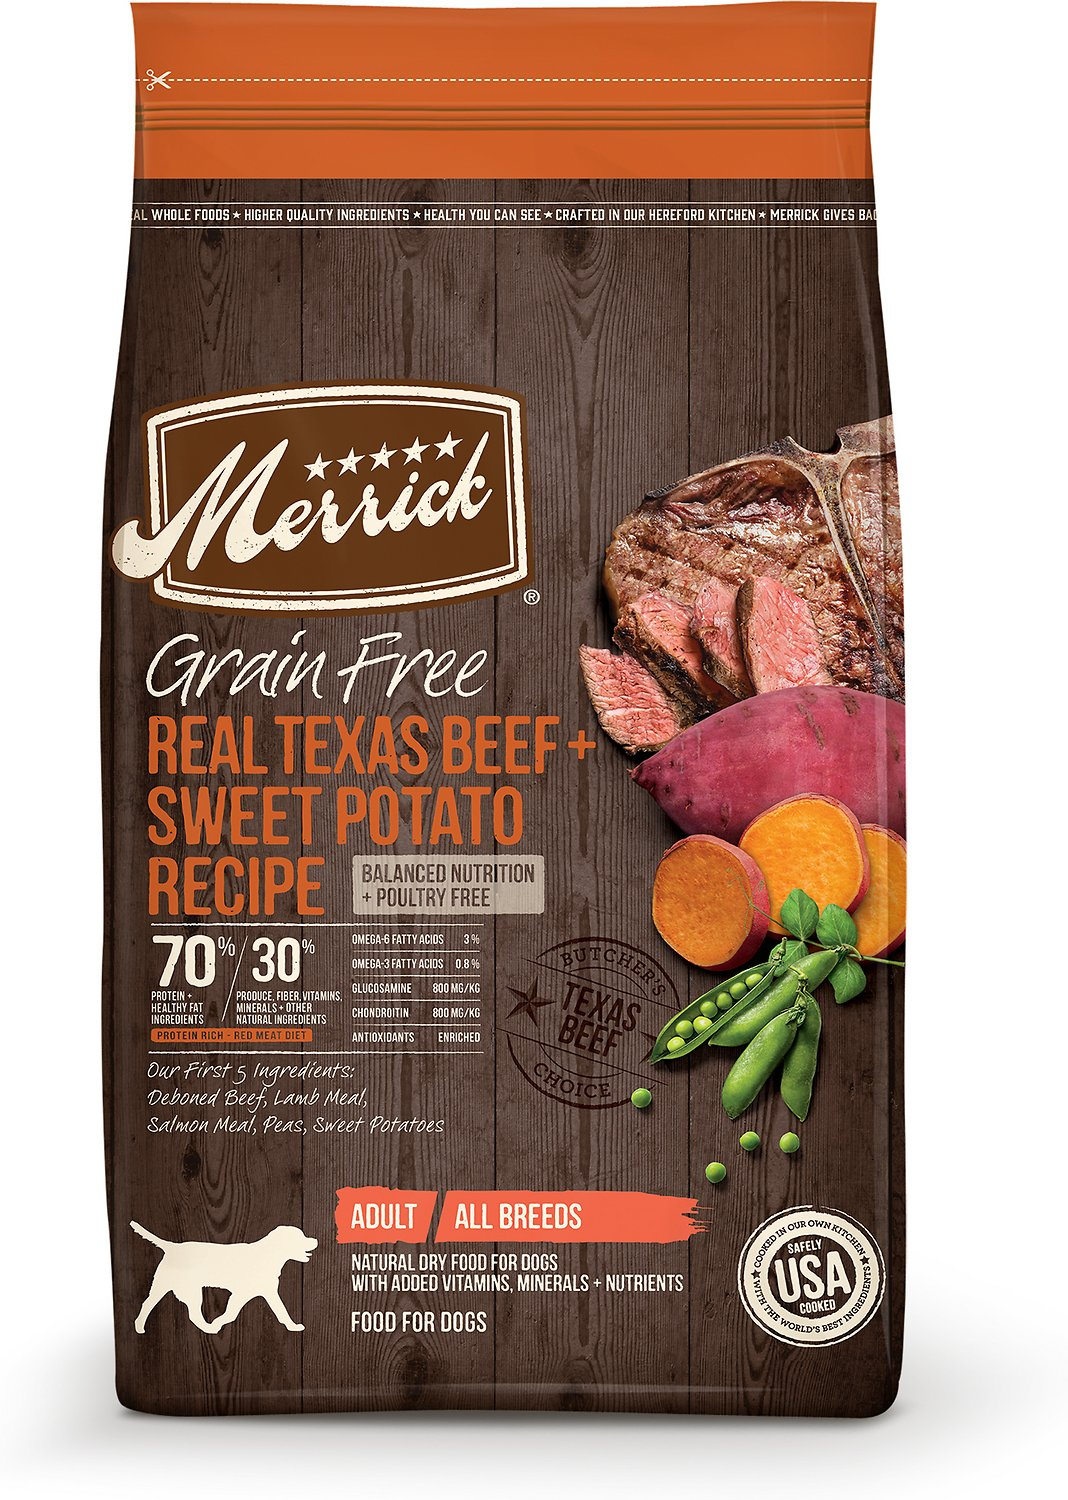 Merrick Grain-Free Real Texas Beef + Sweet Potato Recipe Dry Dog Food Image